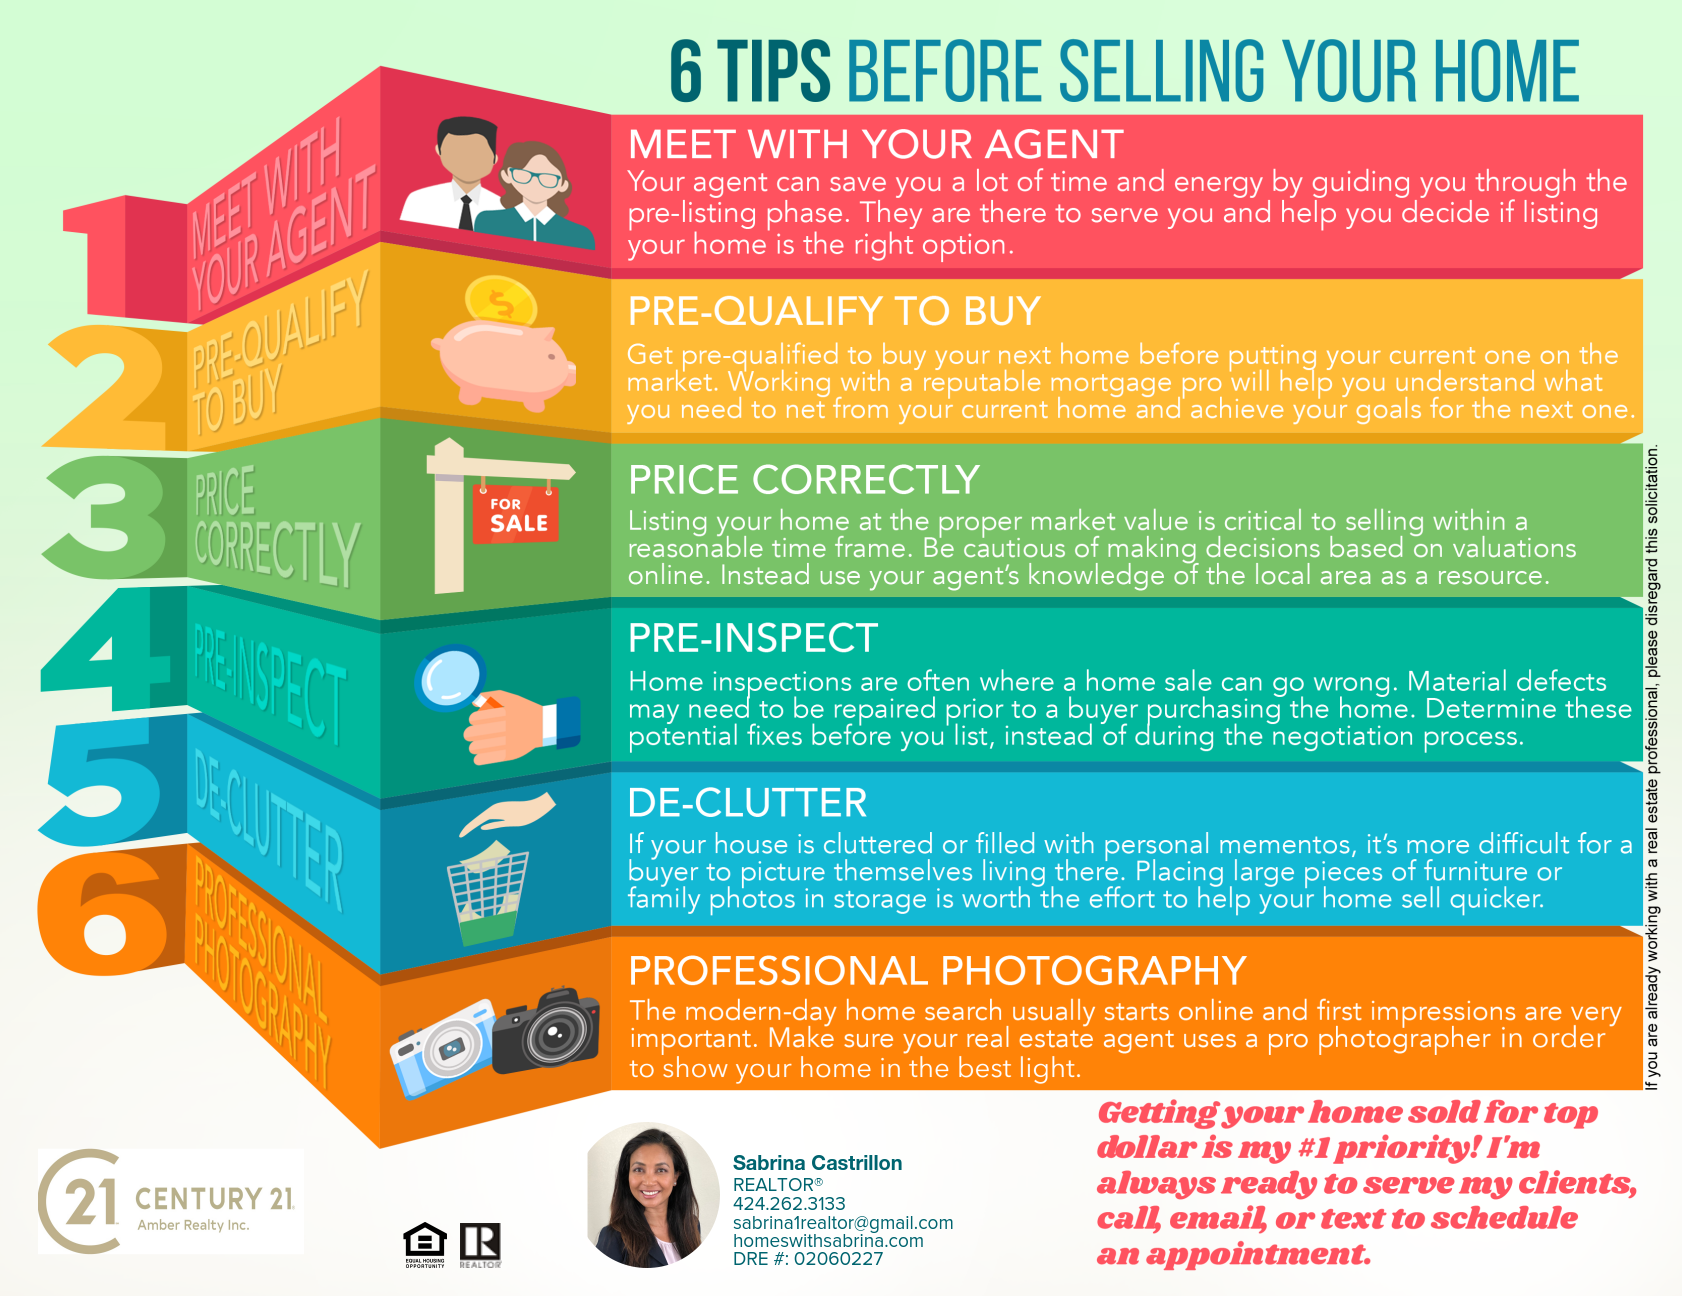 6-tips-before-selling-your-home-infographic-10344333